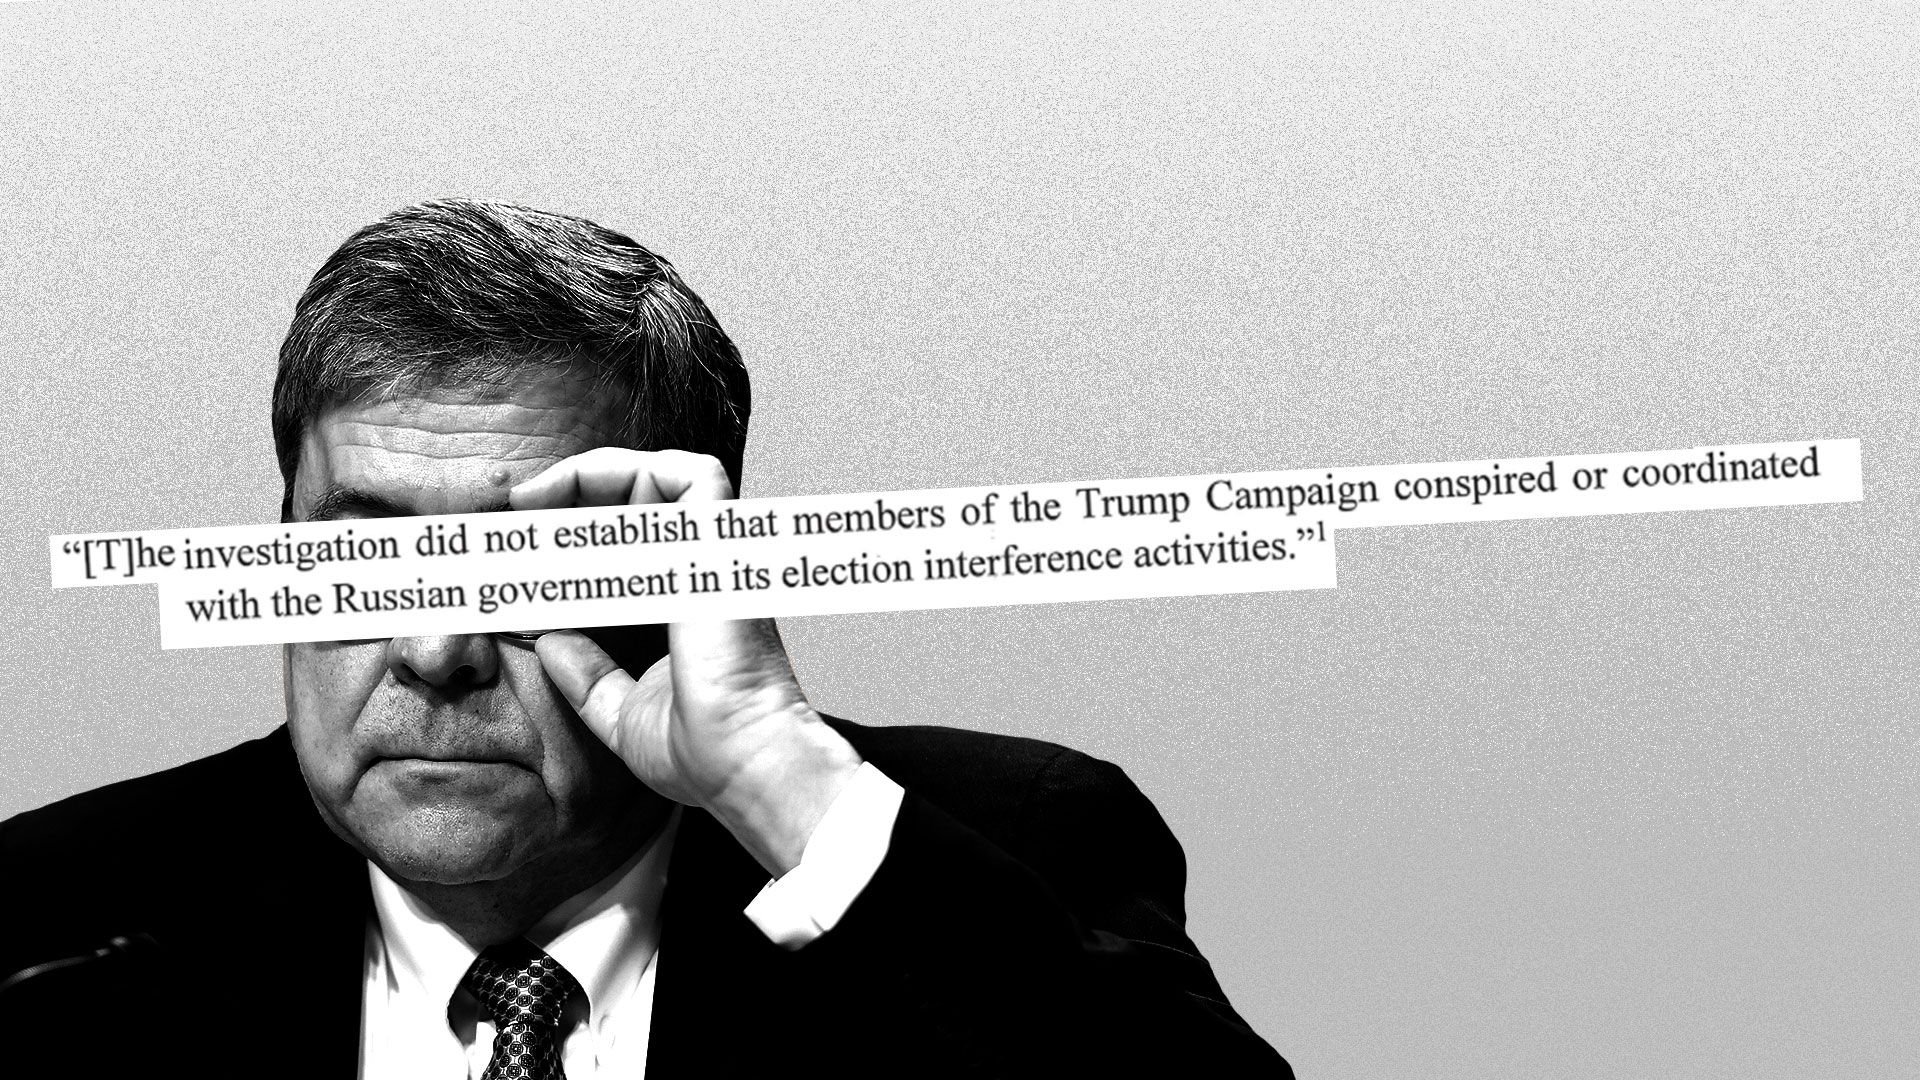 The full Mueller report context of the quotes in Bill Barr's summary